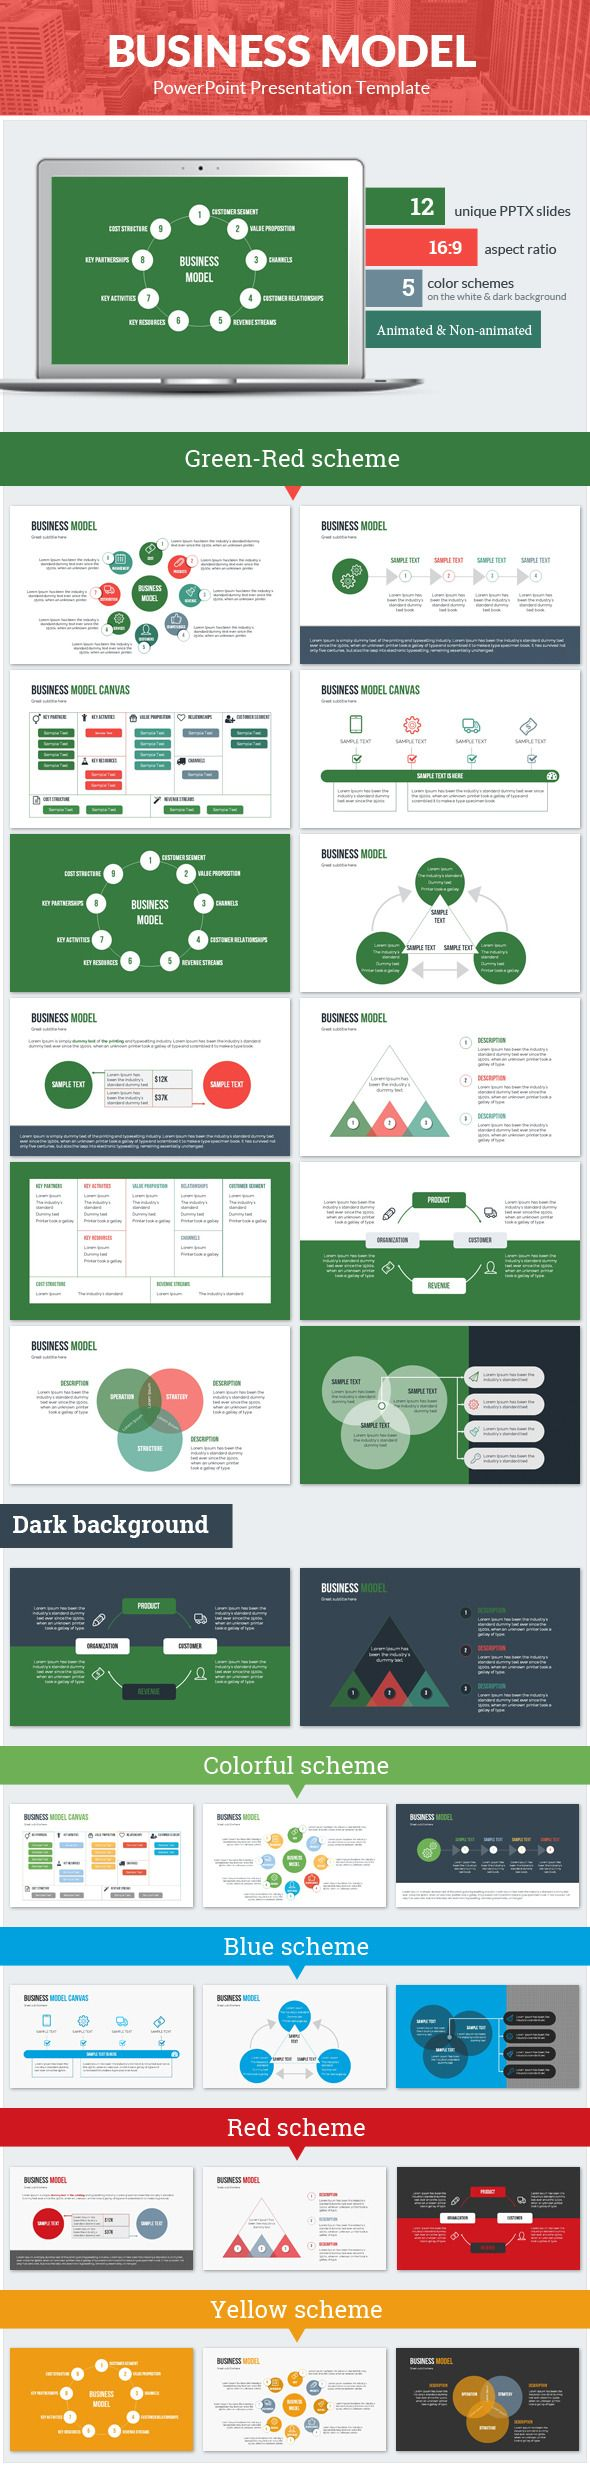 Business Model PowerPoint Presentation Template #design #slides Download: http://graphicriver.net/item/business-model-powerpoint-presentation-template/12251341?ref=ksioks